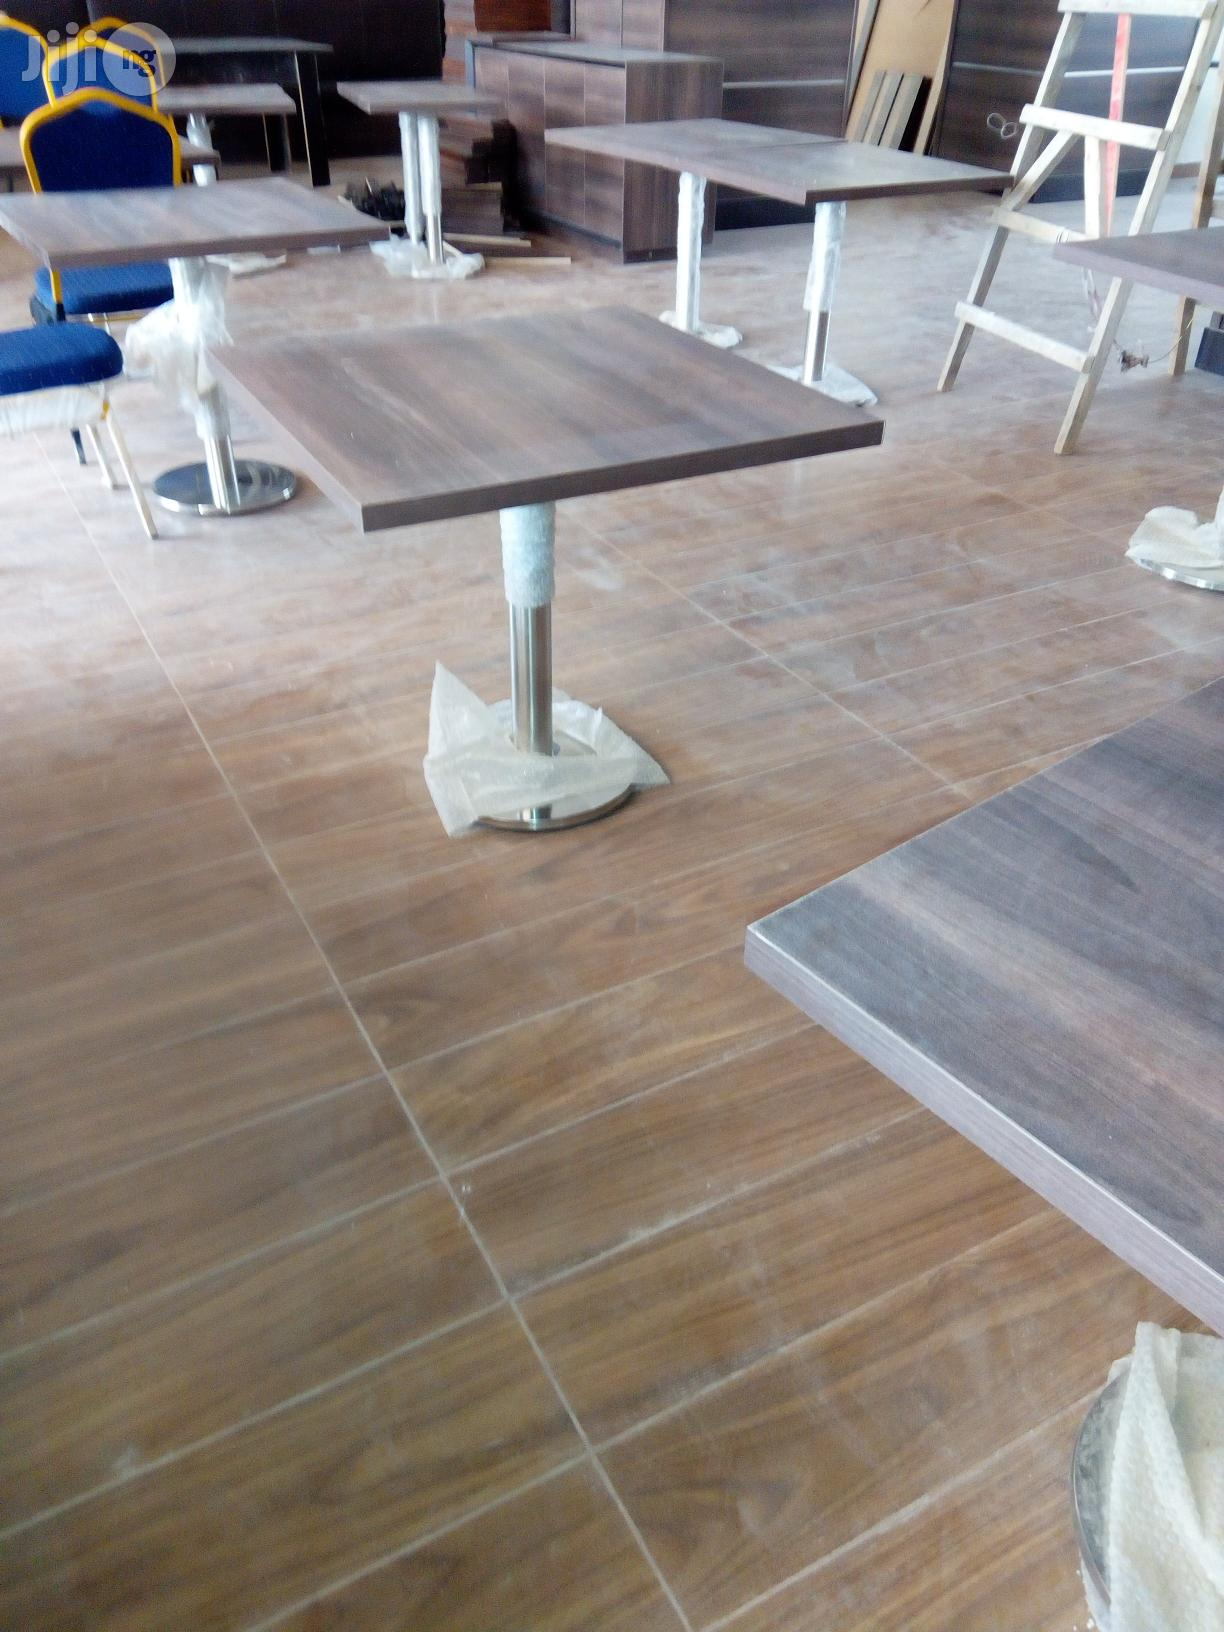 Wooden Floor Tiles Interior | Building Materials for sale in Port-Harcourt, Rivers State, Nigeria